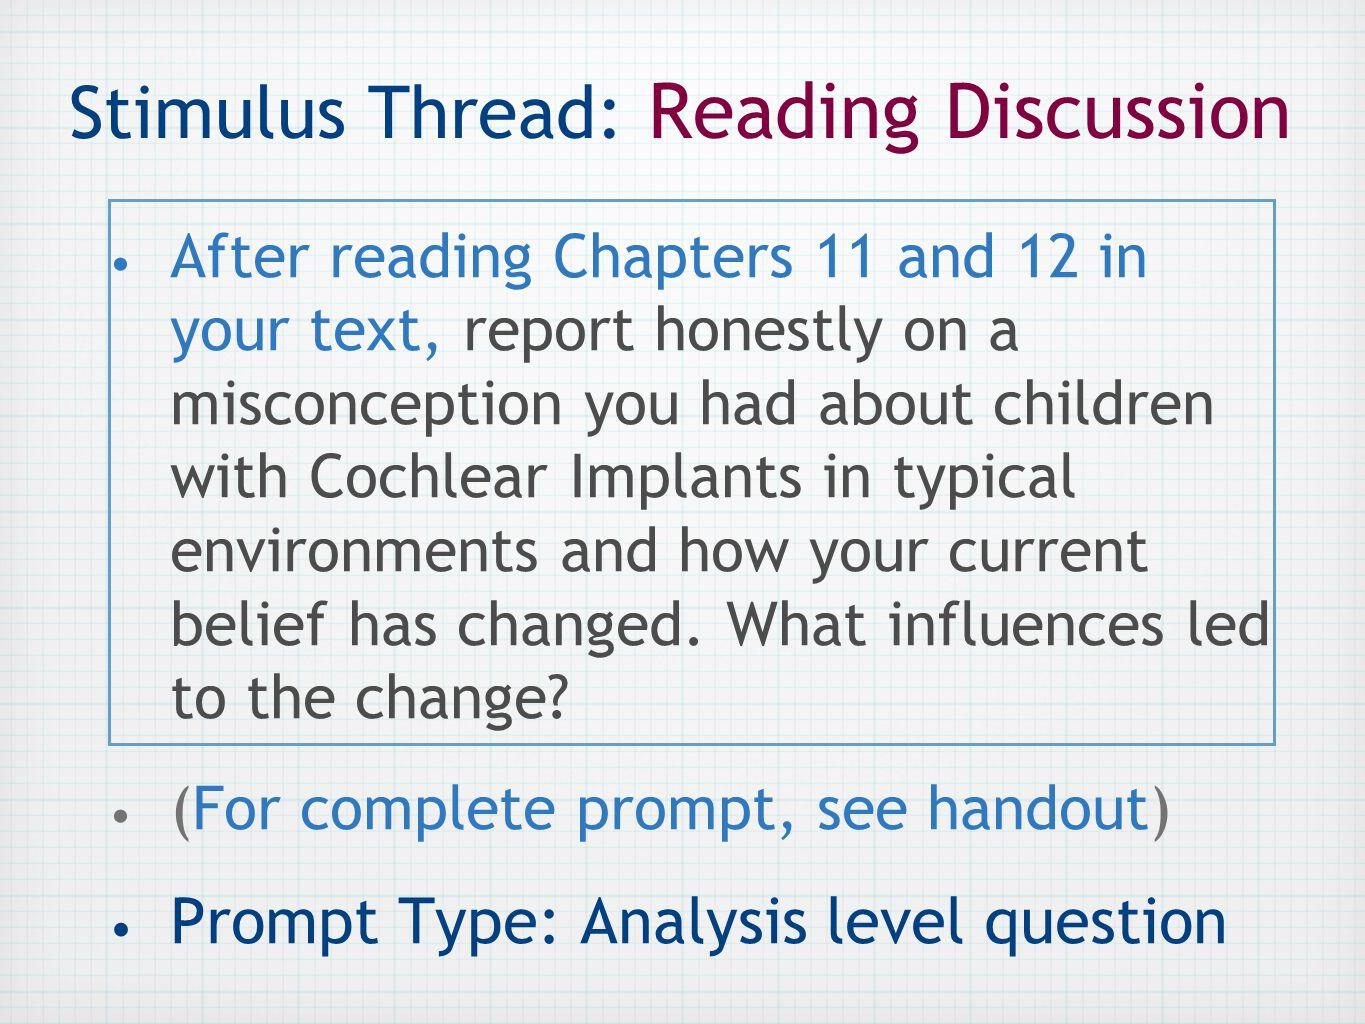 Stimulus Thread: Reading Discussion After reading Chapters 11 and 12 in your text, report honestly on a misconception you had about children with Cochlear Implants in typical environments and how your current belief has changed.